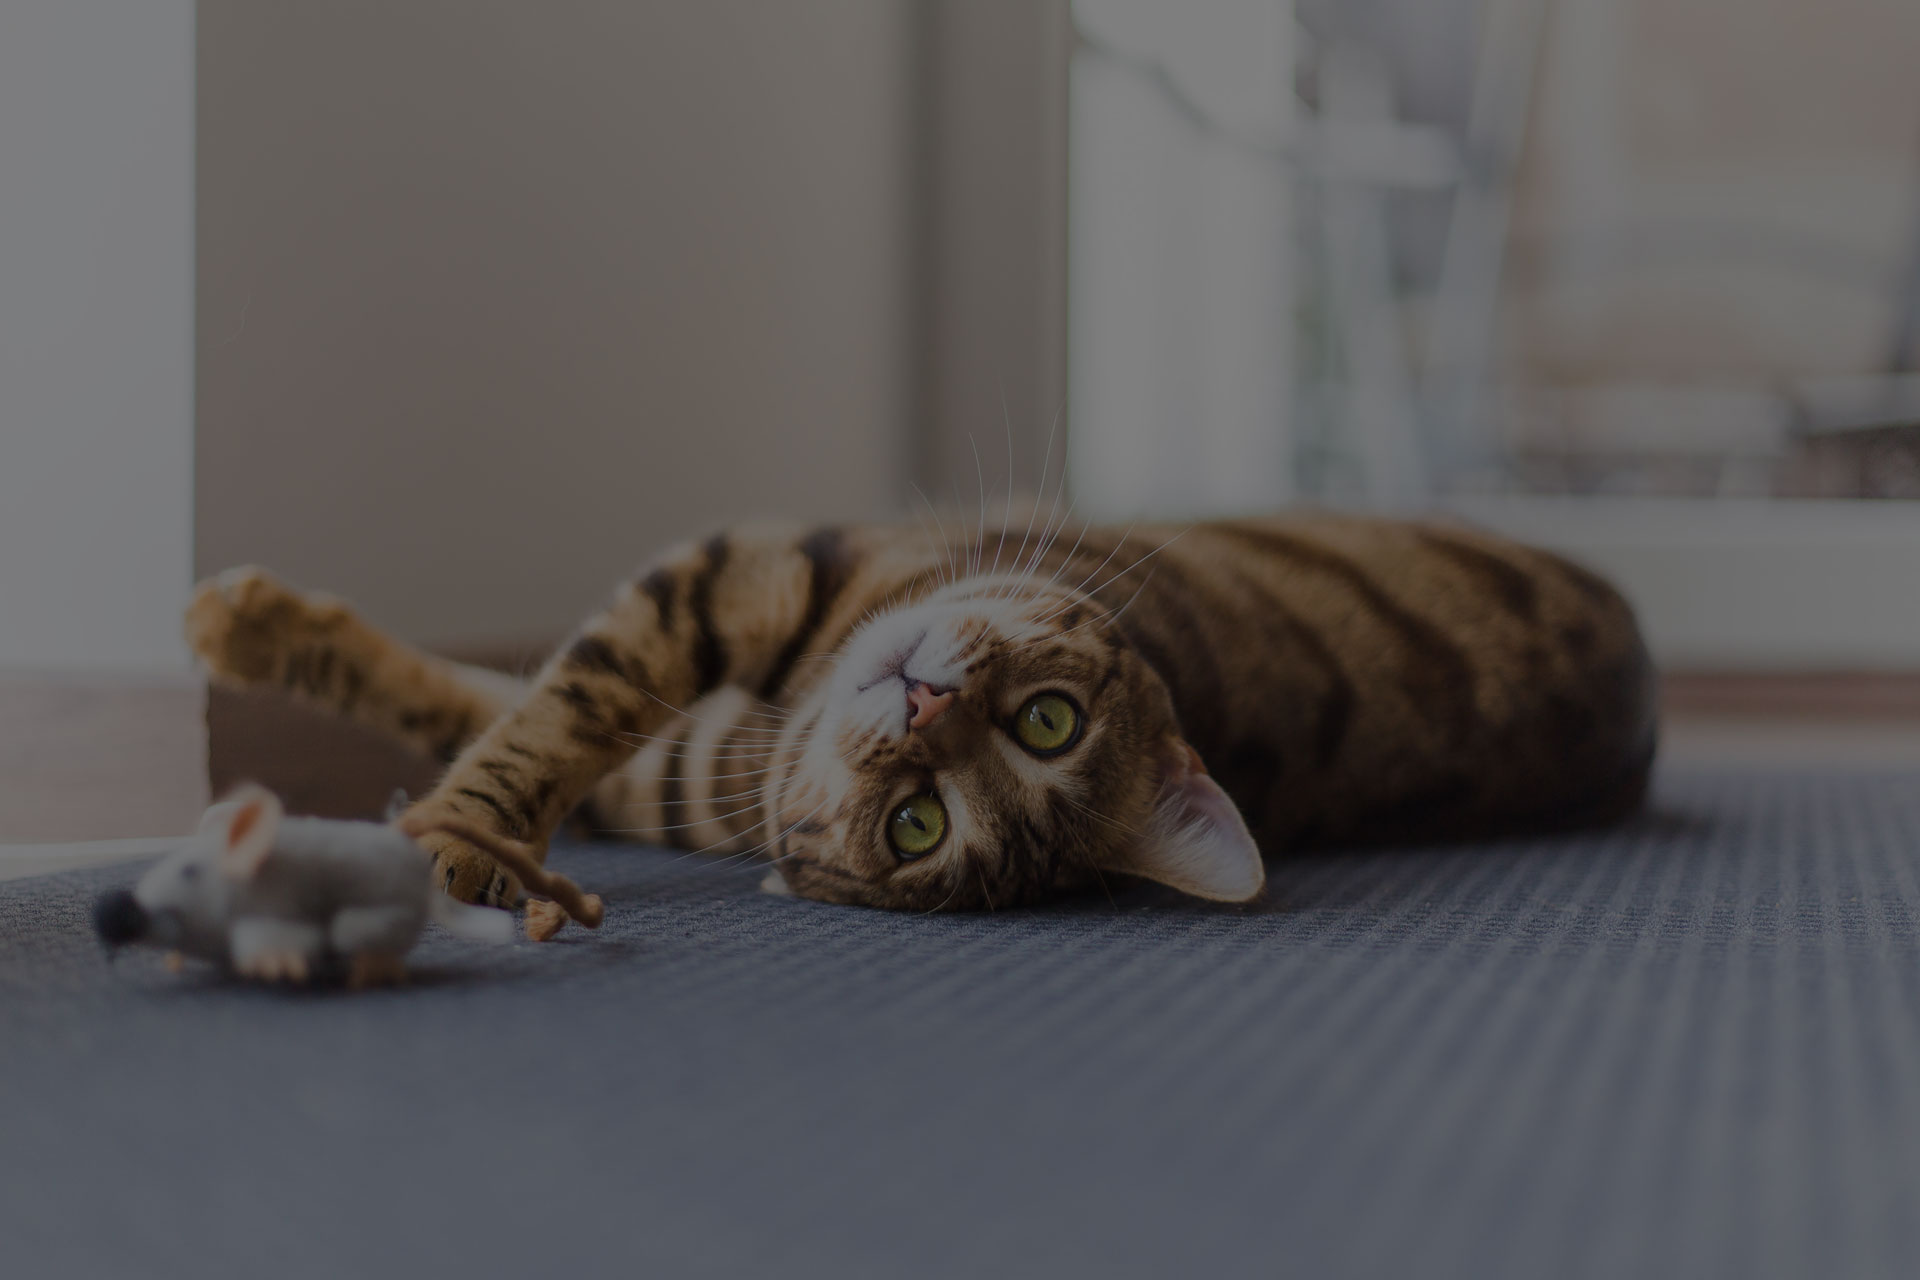 Funny beautiful Bengal cat playing in the house on the floor with a mouse. - Image